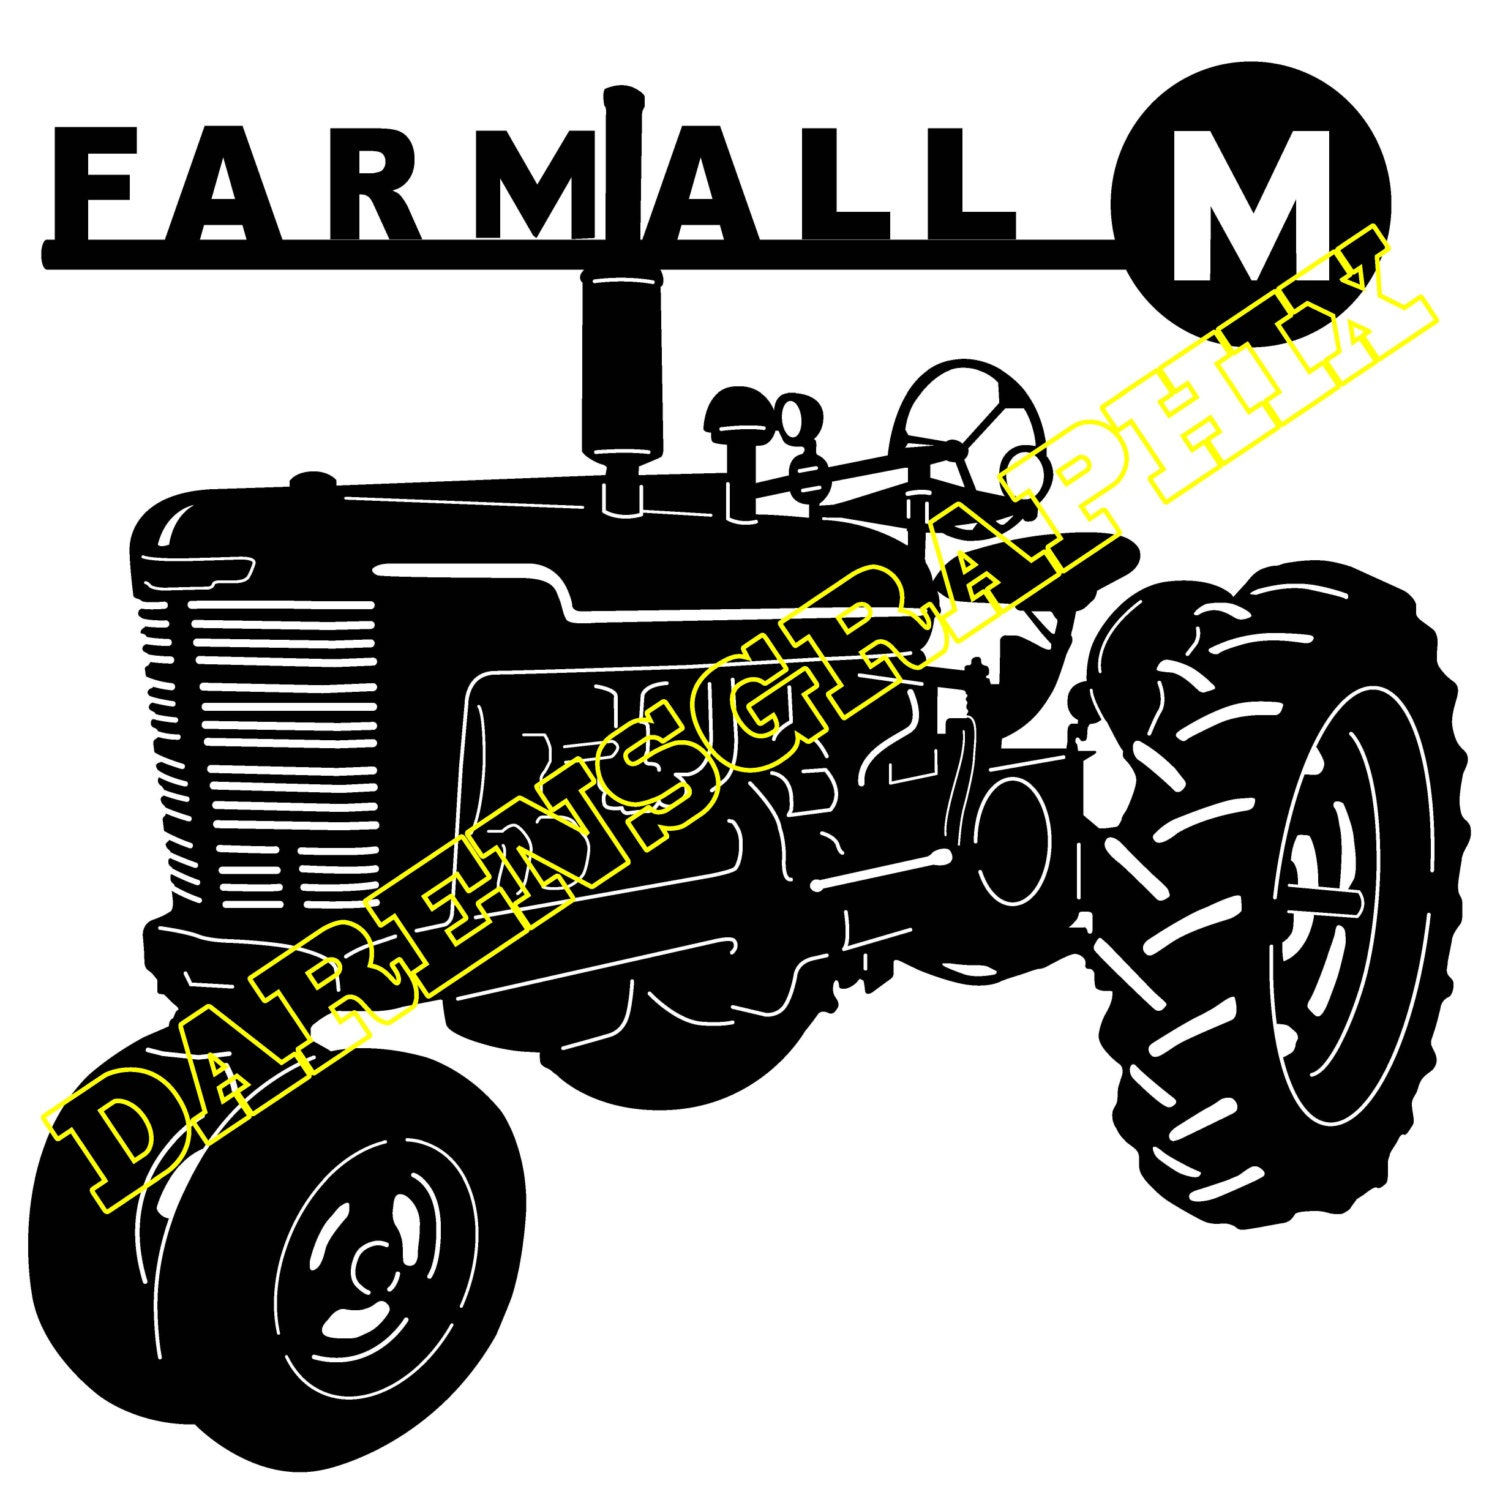 Farmall M Decal : Dxf file of a farmall m tractor for use with cnc machine